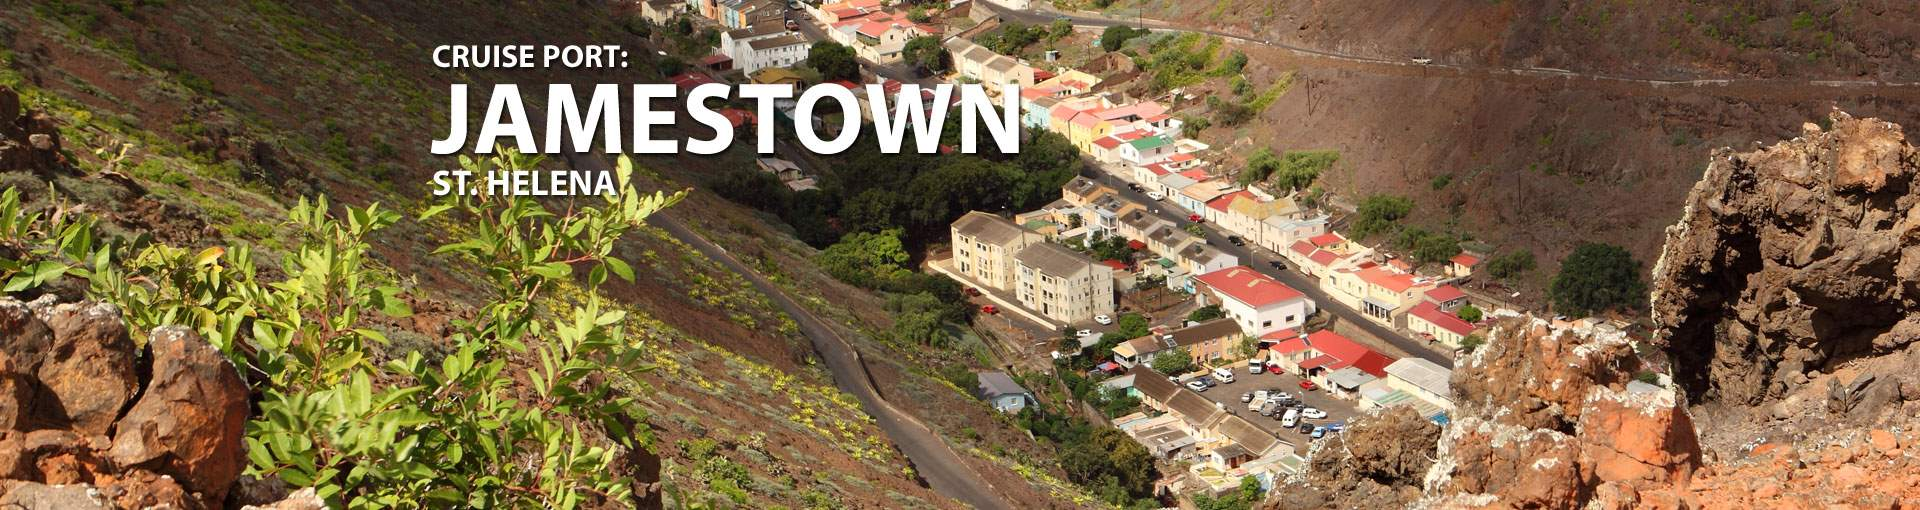 Cruises to Jamestown, St Helena